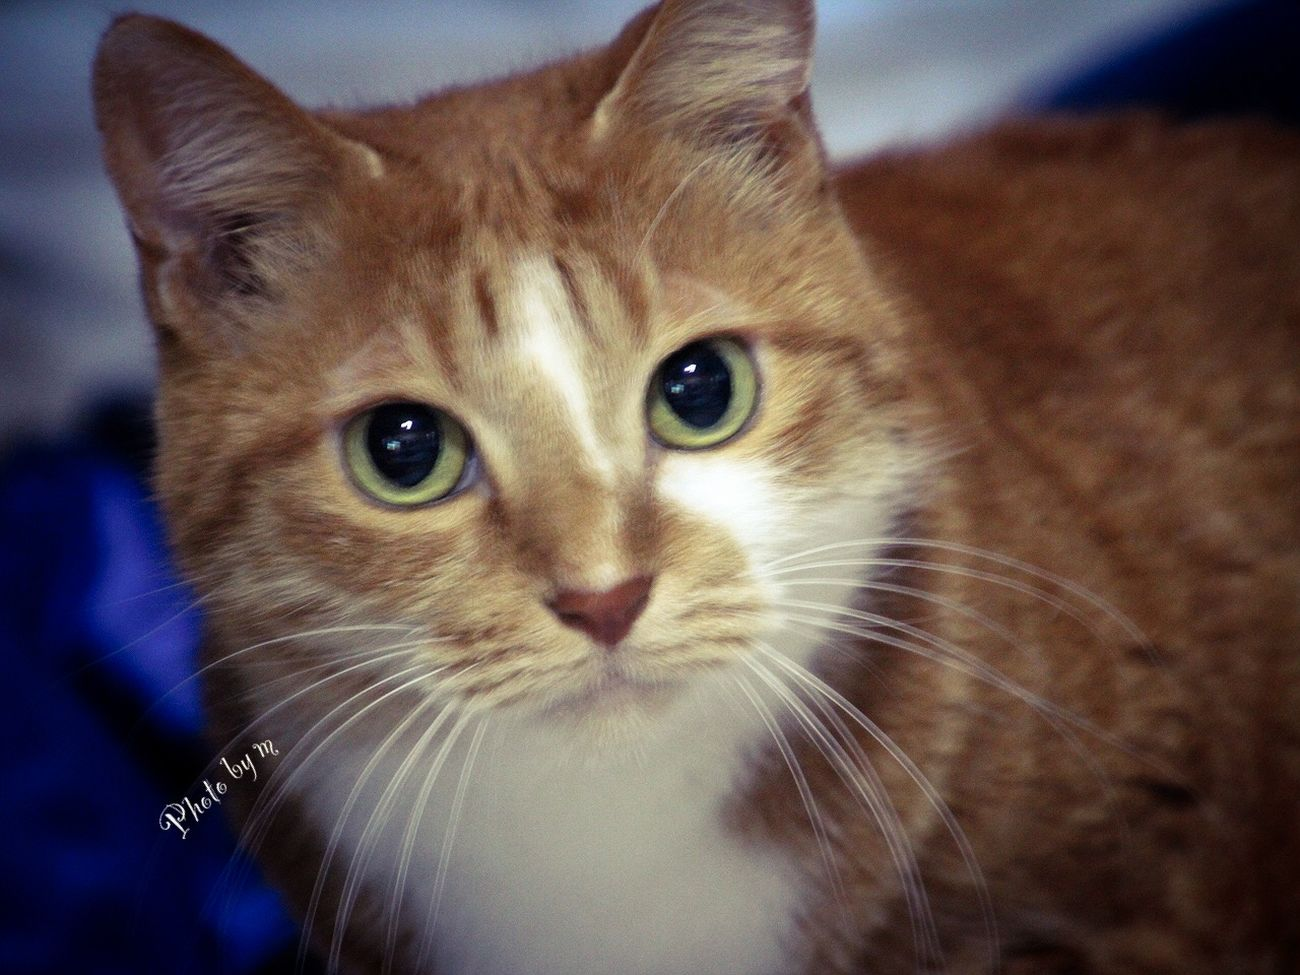 Cat Cat♡ Cat Lovers My Cat 猫 茶トラ猫 ウチの姫様 Animal Playing With The Animals Photography